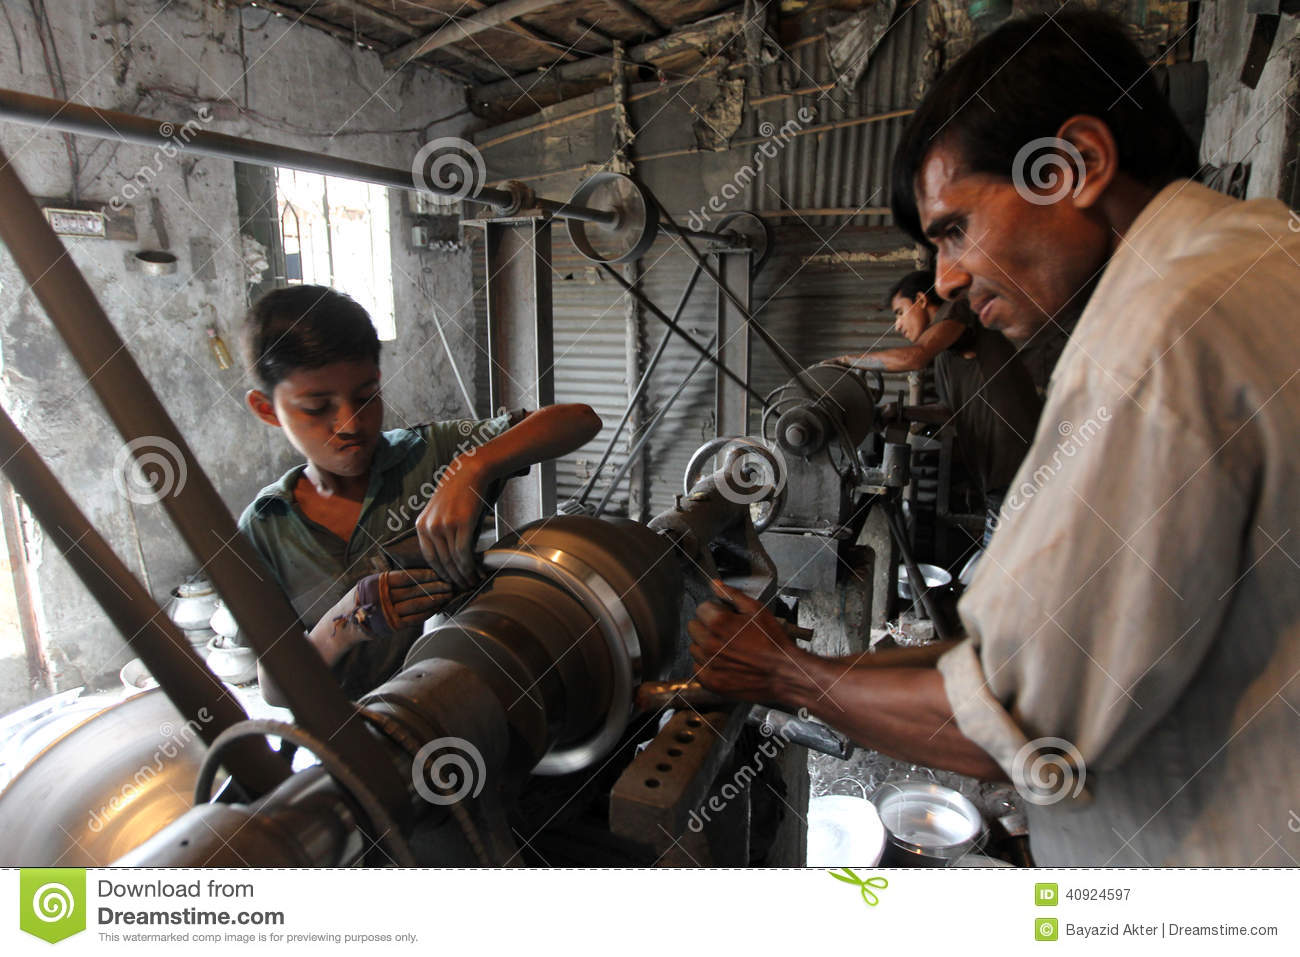 hard labor in bangladesh essay Child labor today  child labor is not as severe an issue as it was a centuries ago, but it still affects millions of kids worldwide  in both kenya and bangladesh.